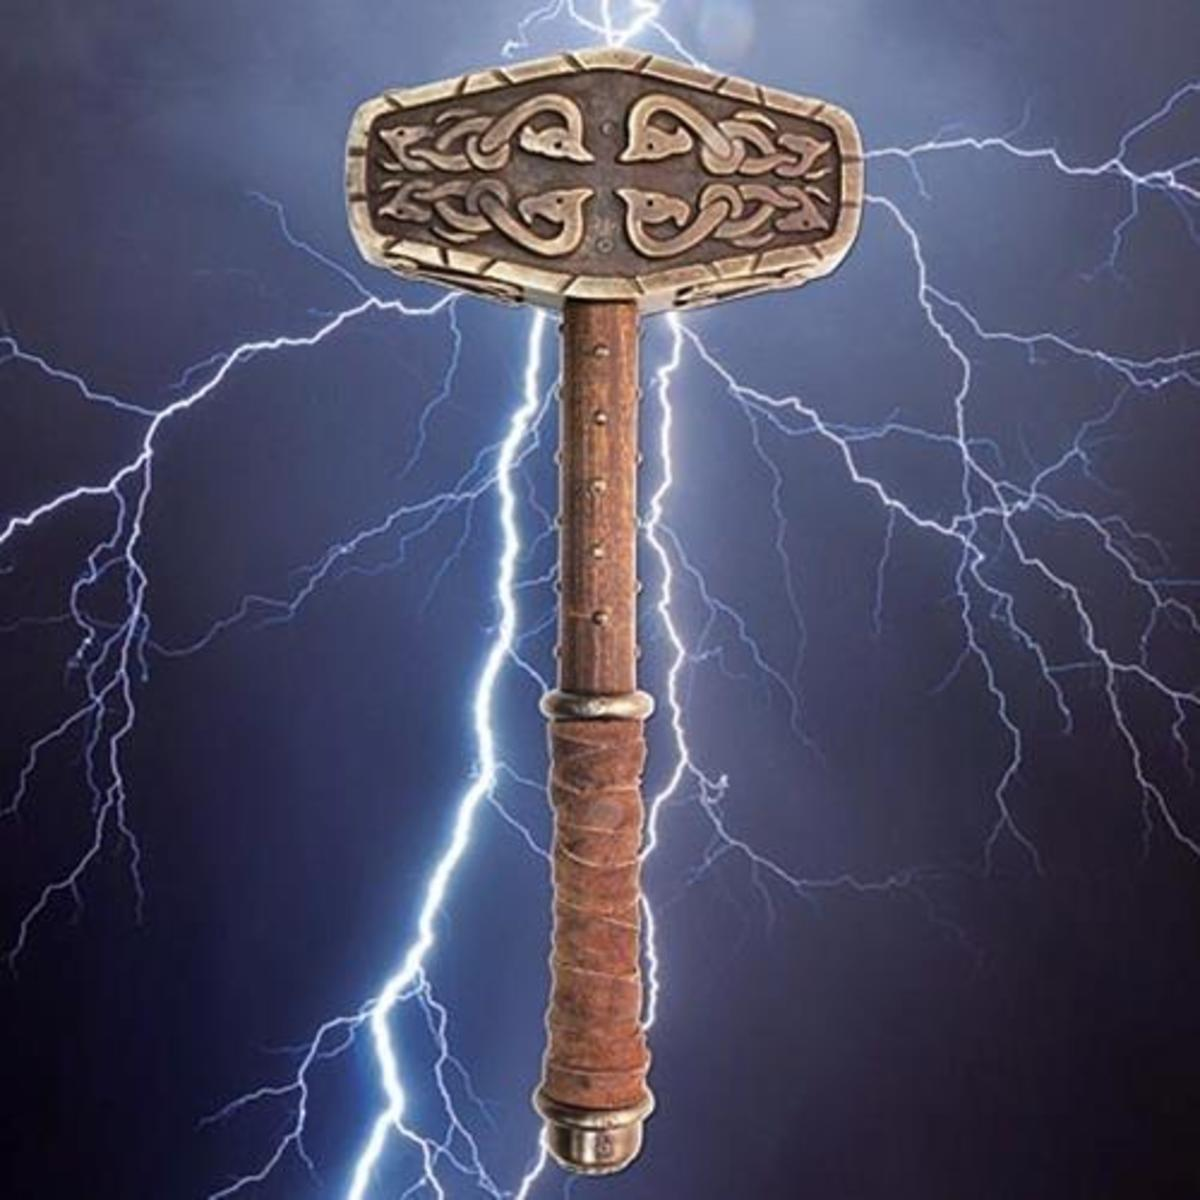 Here's a version of Mjollnir you won't see very often, as in the picture above emanating lightning. If you're a Giant be afraid, be very afraid